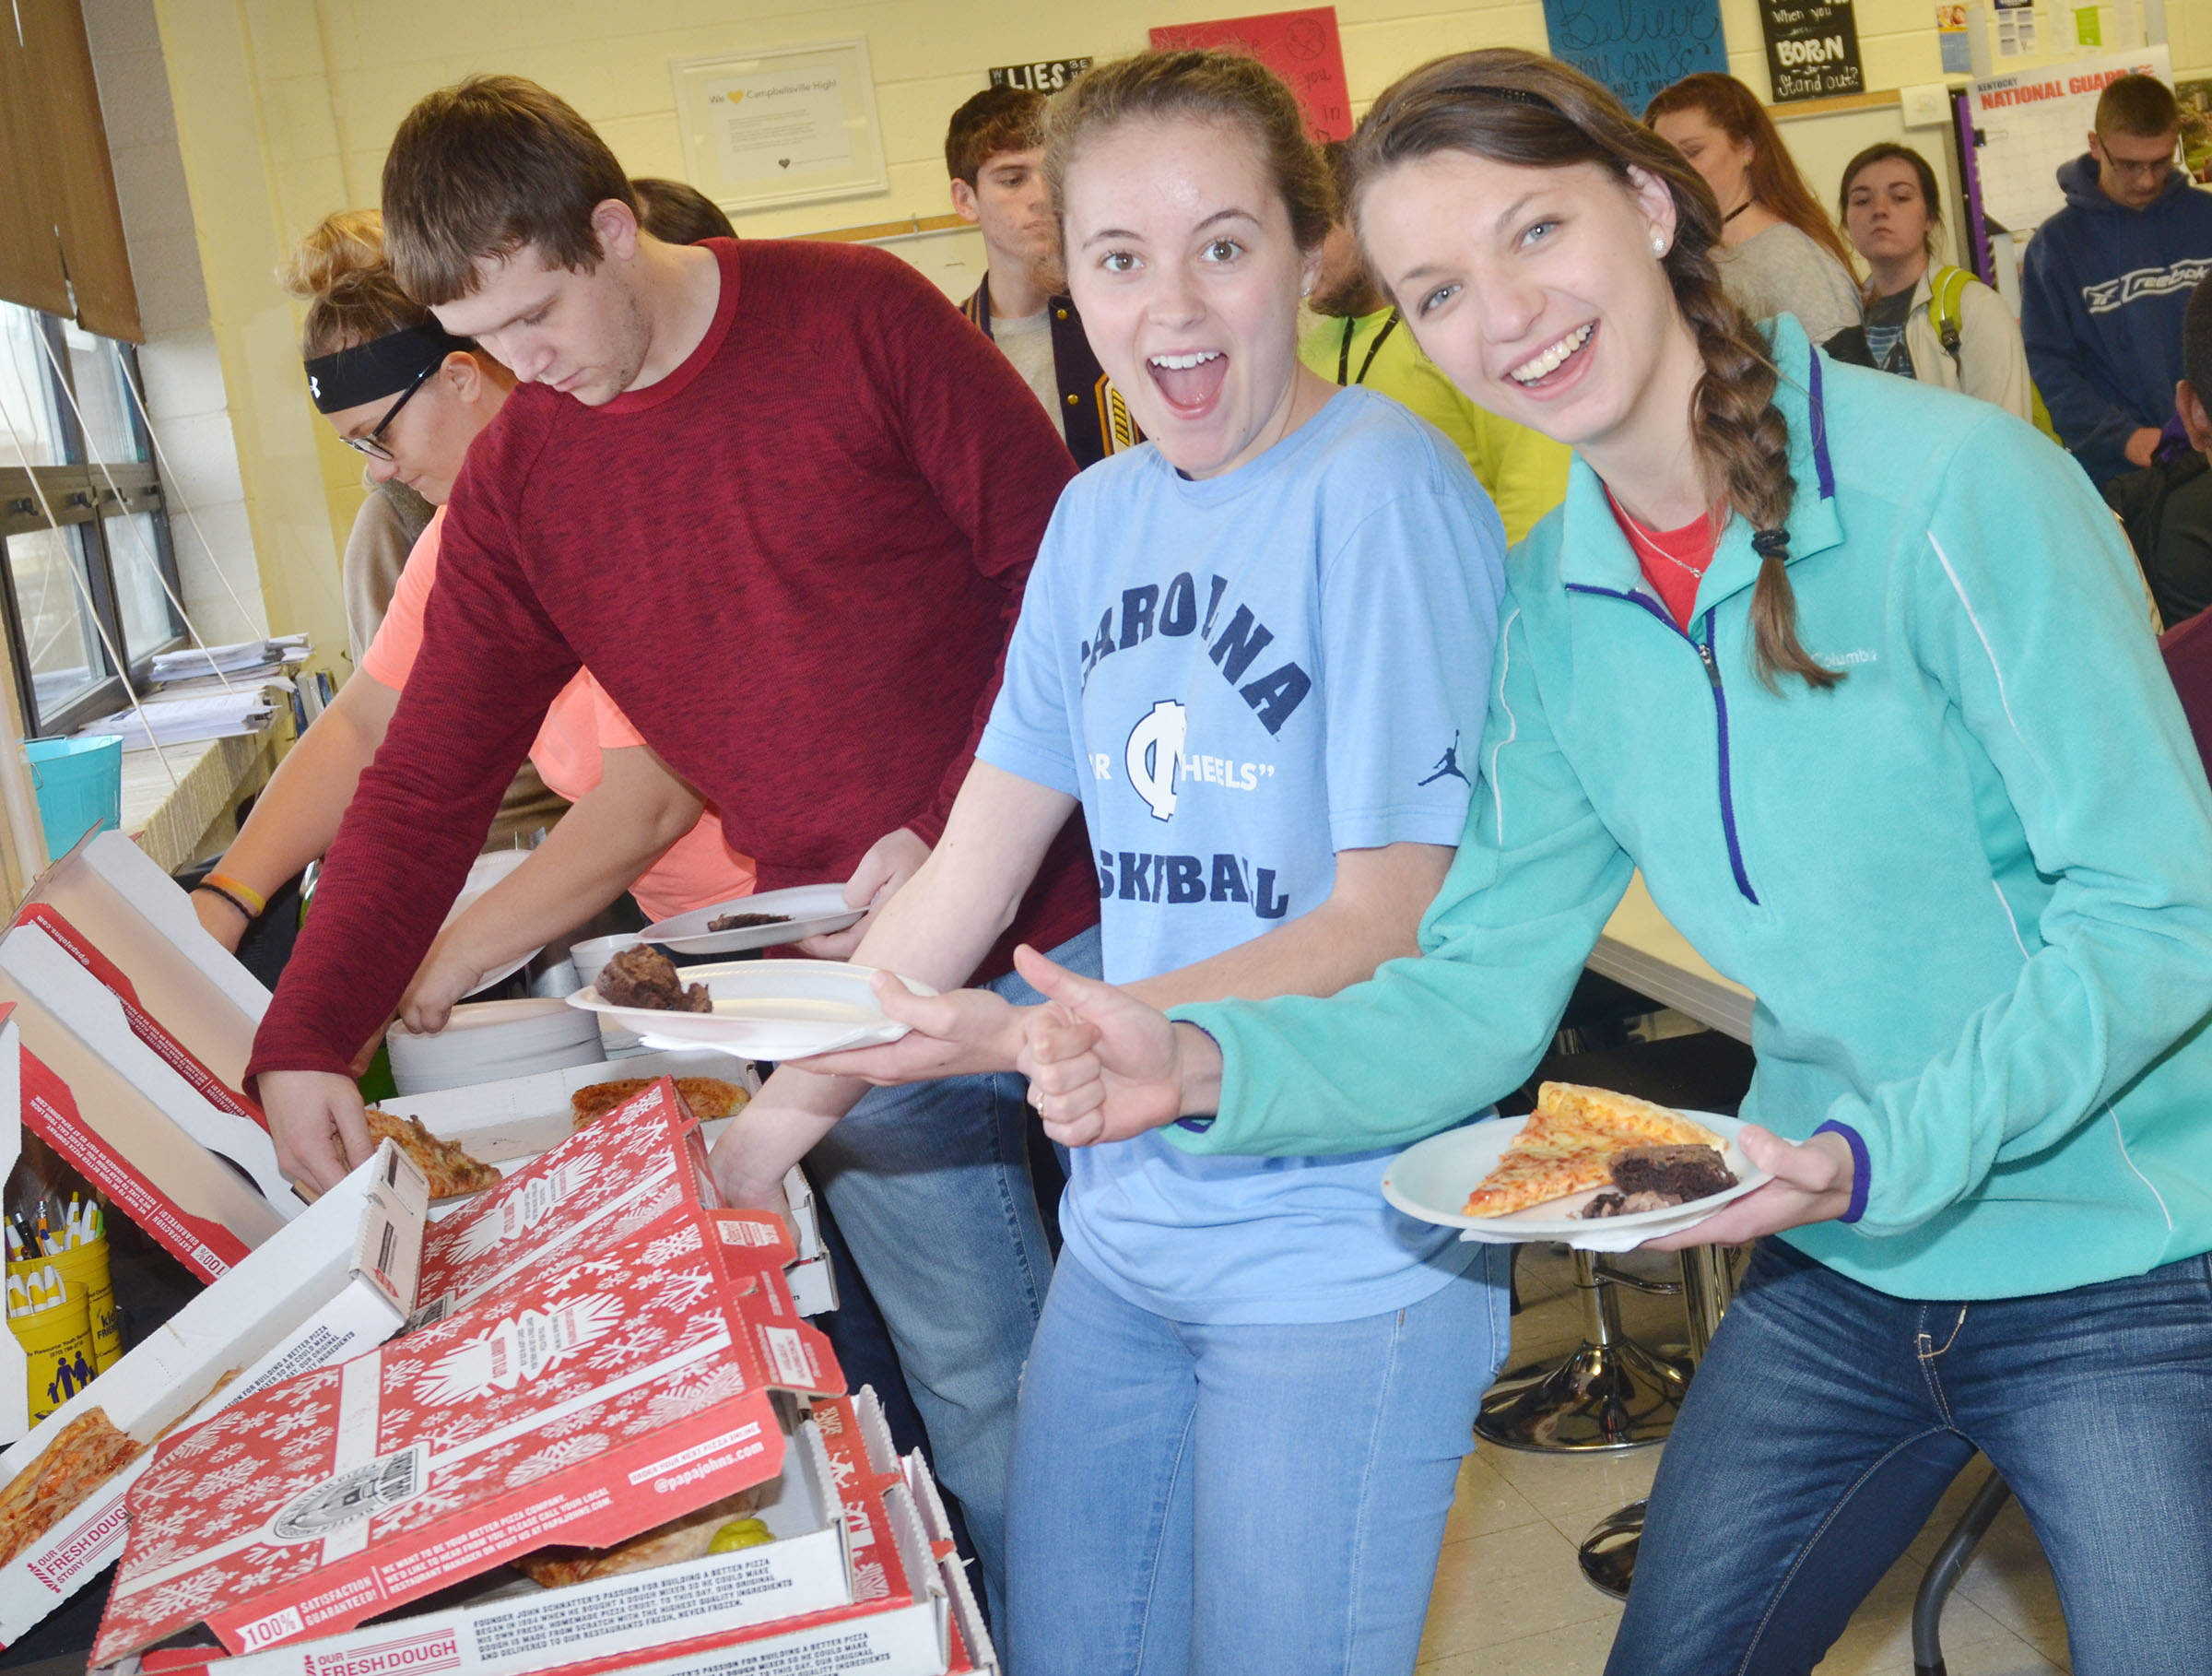 CHS seniors Caroline McMahan, at left, and Caylie Blair enjoy a pizza lunch.